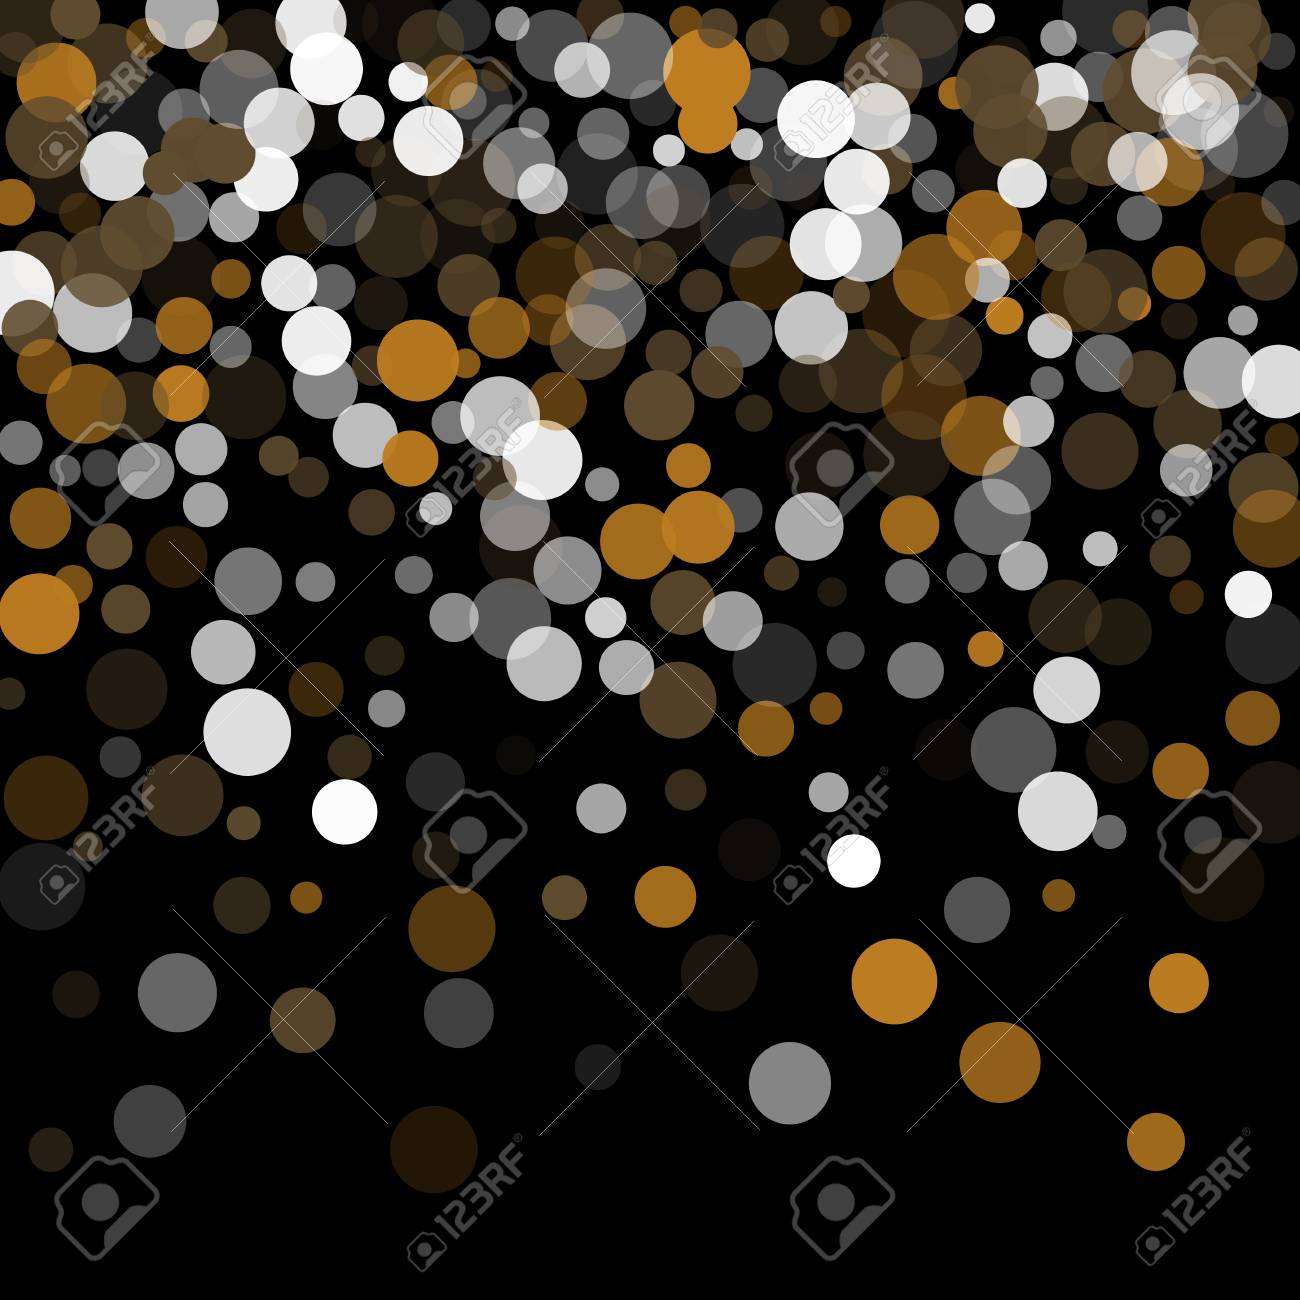 Abstract Black Background With Gold White And Gray Confetti